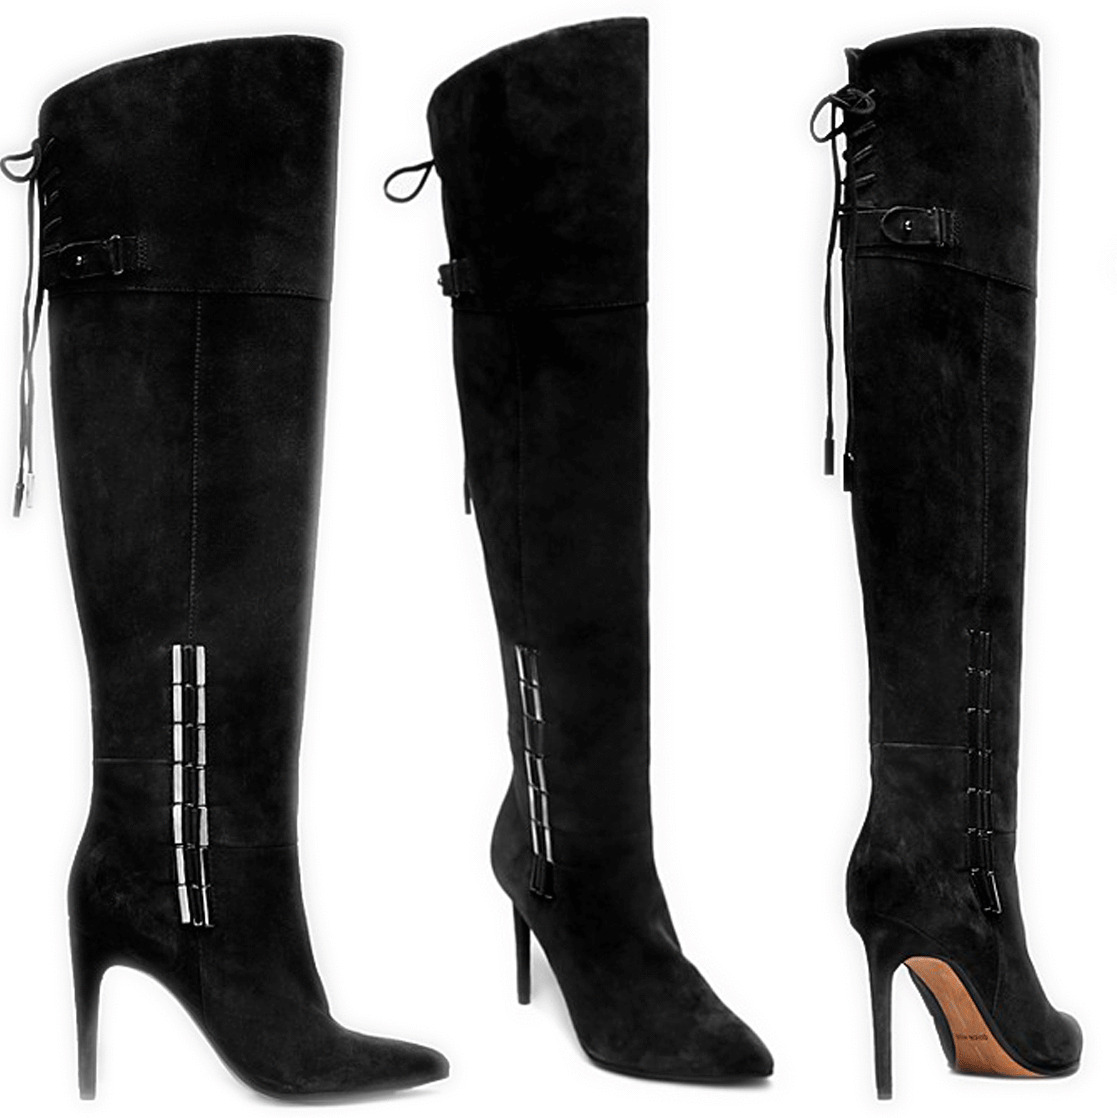 Dolce Vita Inara Over The Knee Pointy Toe Black Suede Boot Booties 8.5- 38.5